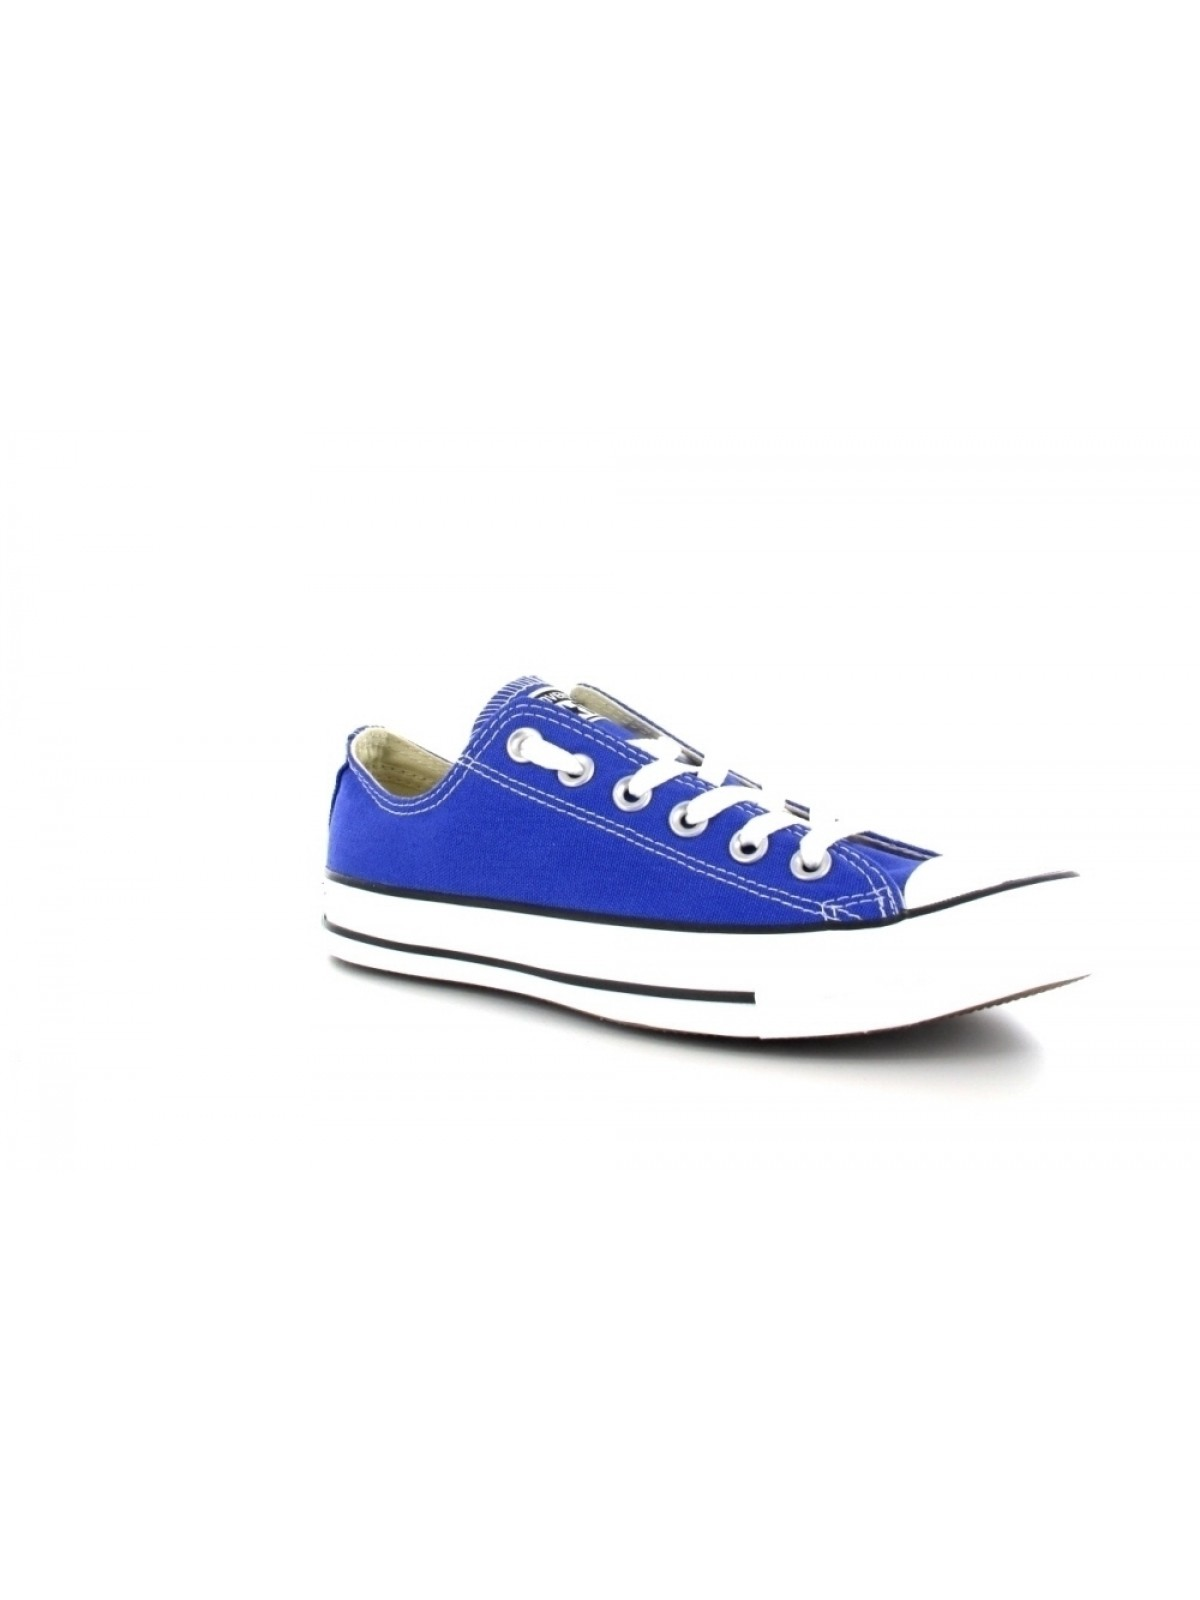 Converse Chuck Taylor all star toile basse violet